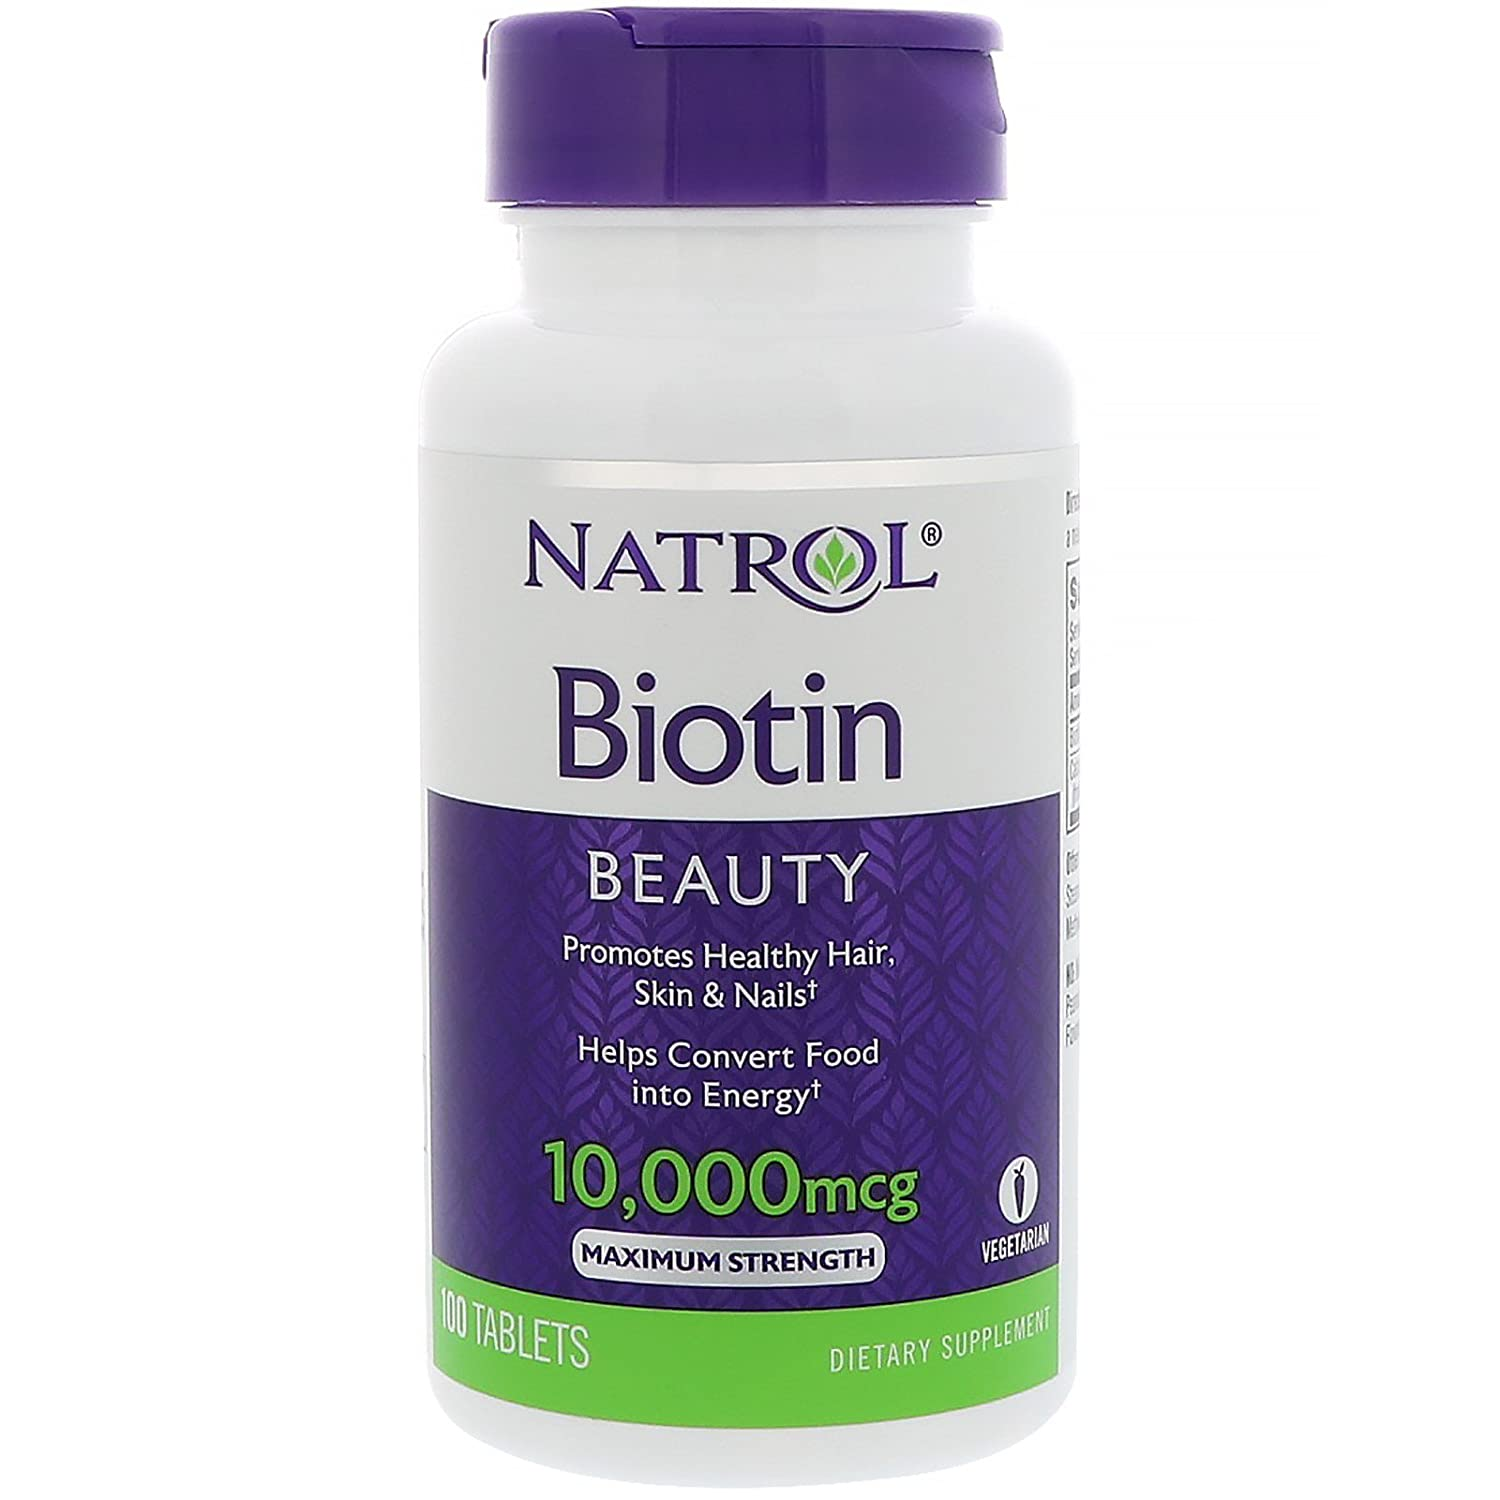 Natrol Biotin Maximum Strength 10,000 mcg Pack of 5 100 tablets